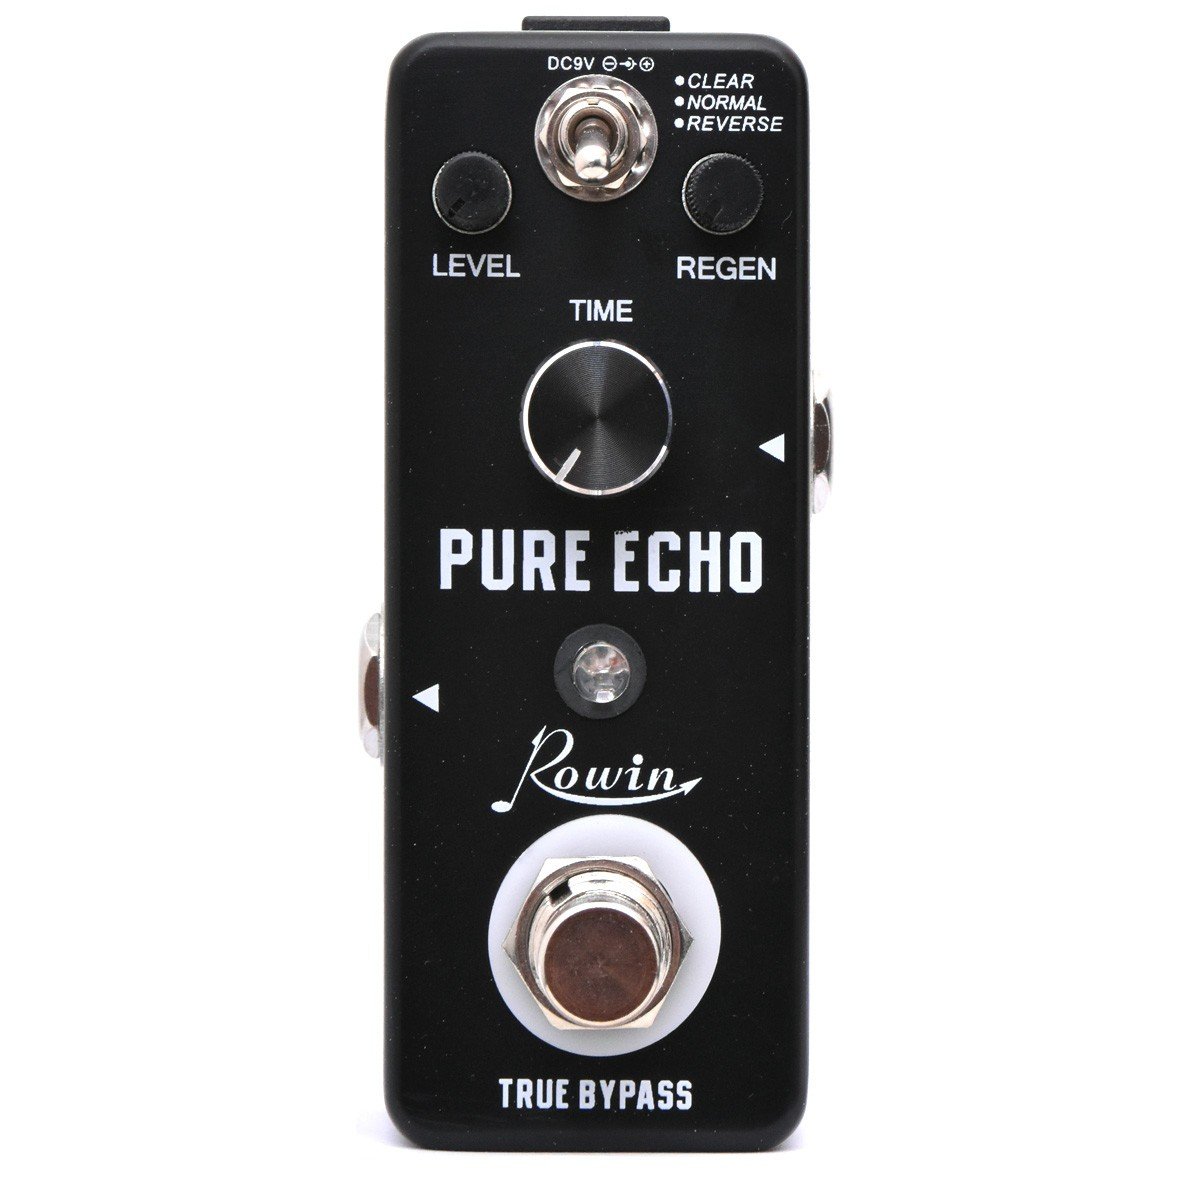 rowin lef 3803 pure echo delay guitar effect pedal music express canada. Black Bedroom Furniture Sets. Home Design Ideas